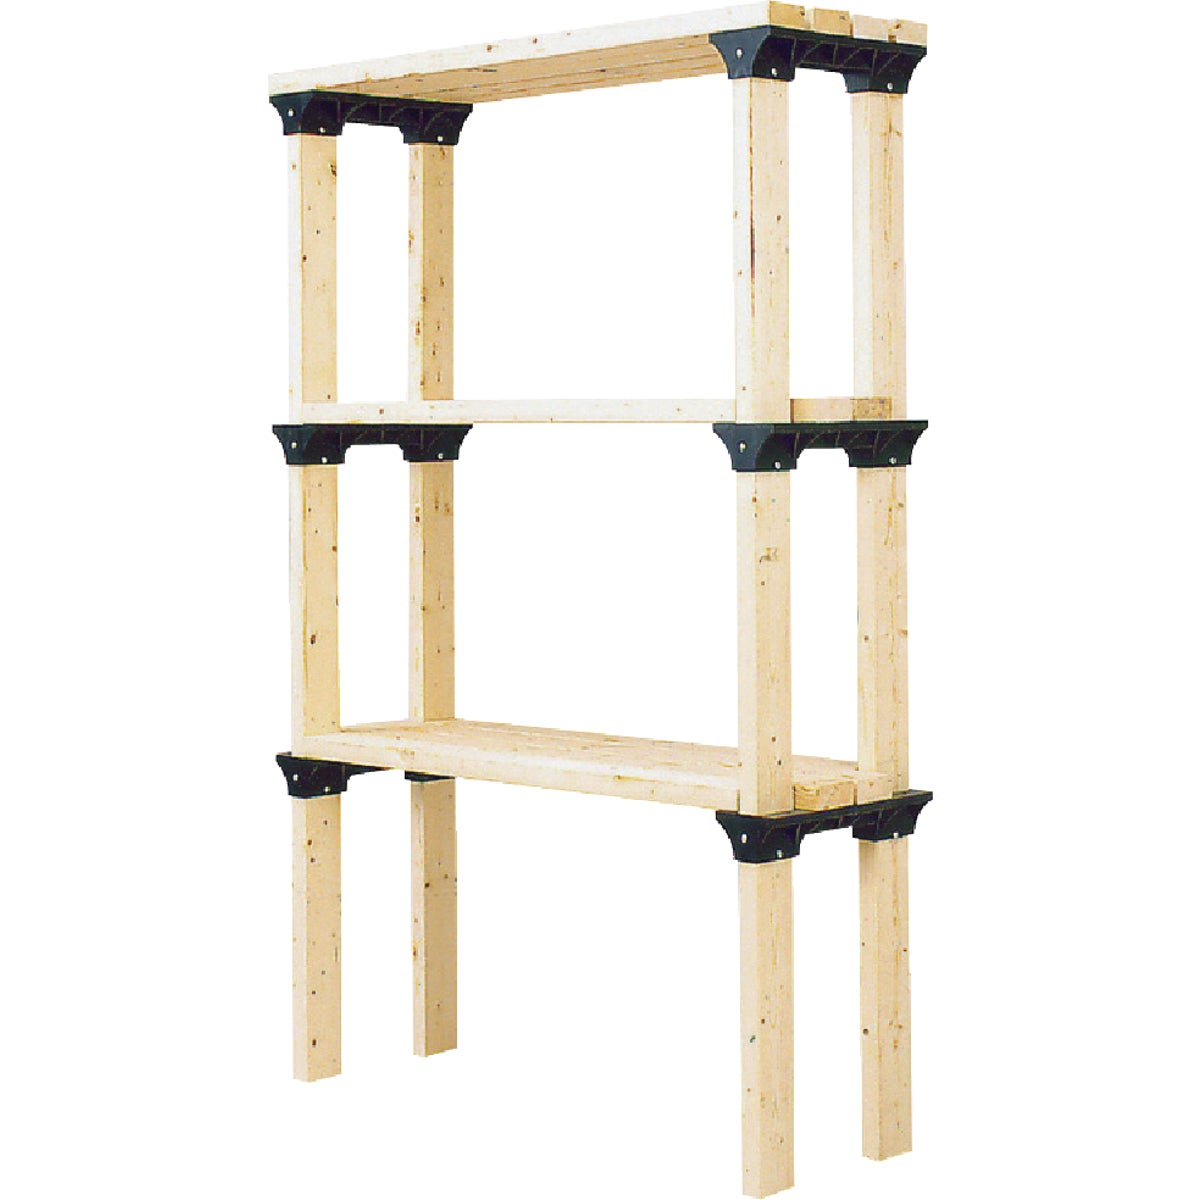 6PK 2X4 BASICS SHELF KIT